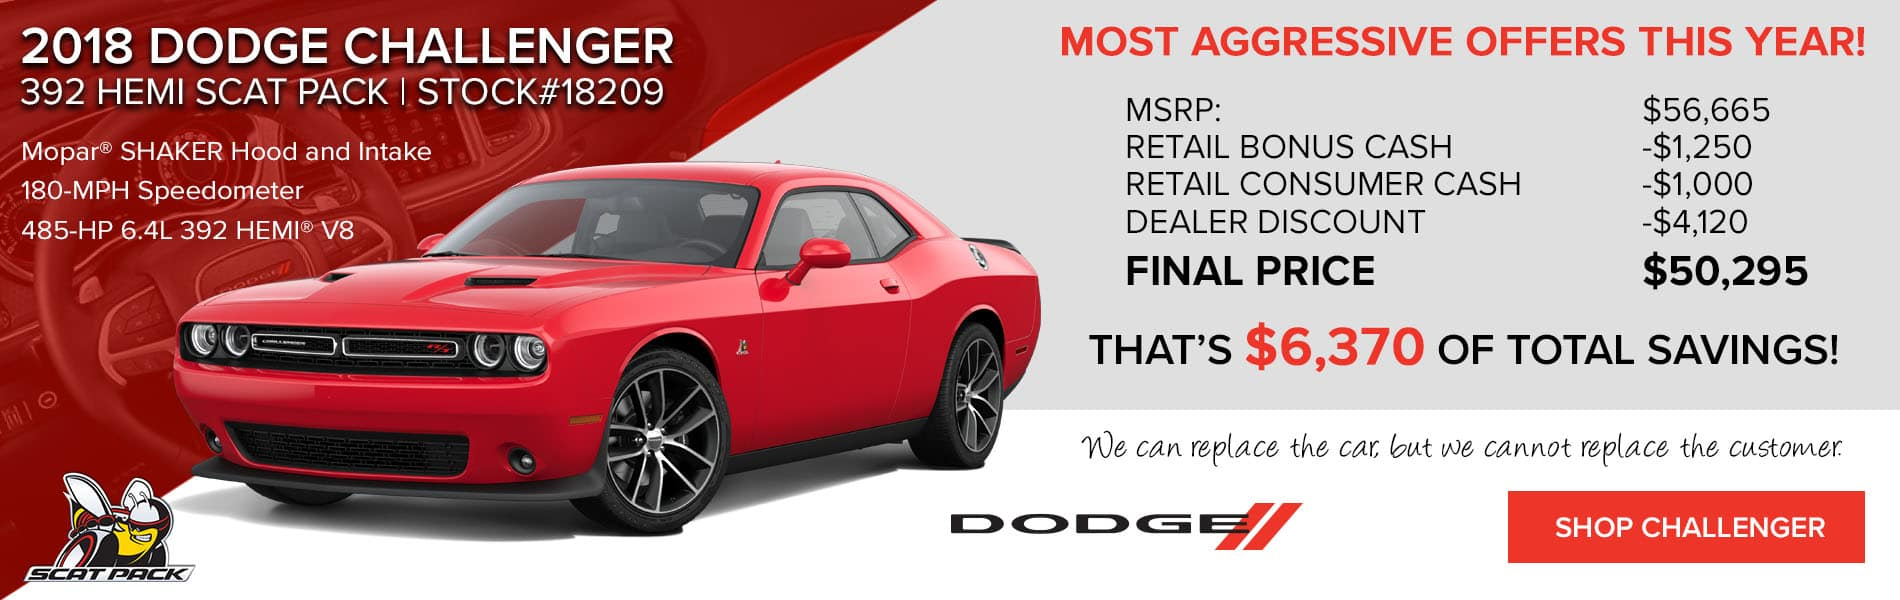 Dodge Challenger 392 Scat Pack with $6,370 in total savings